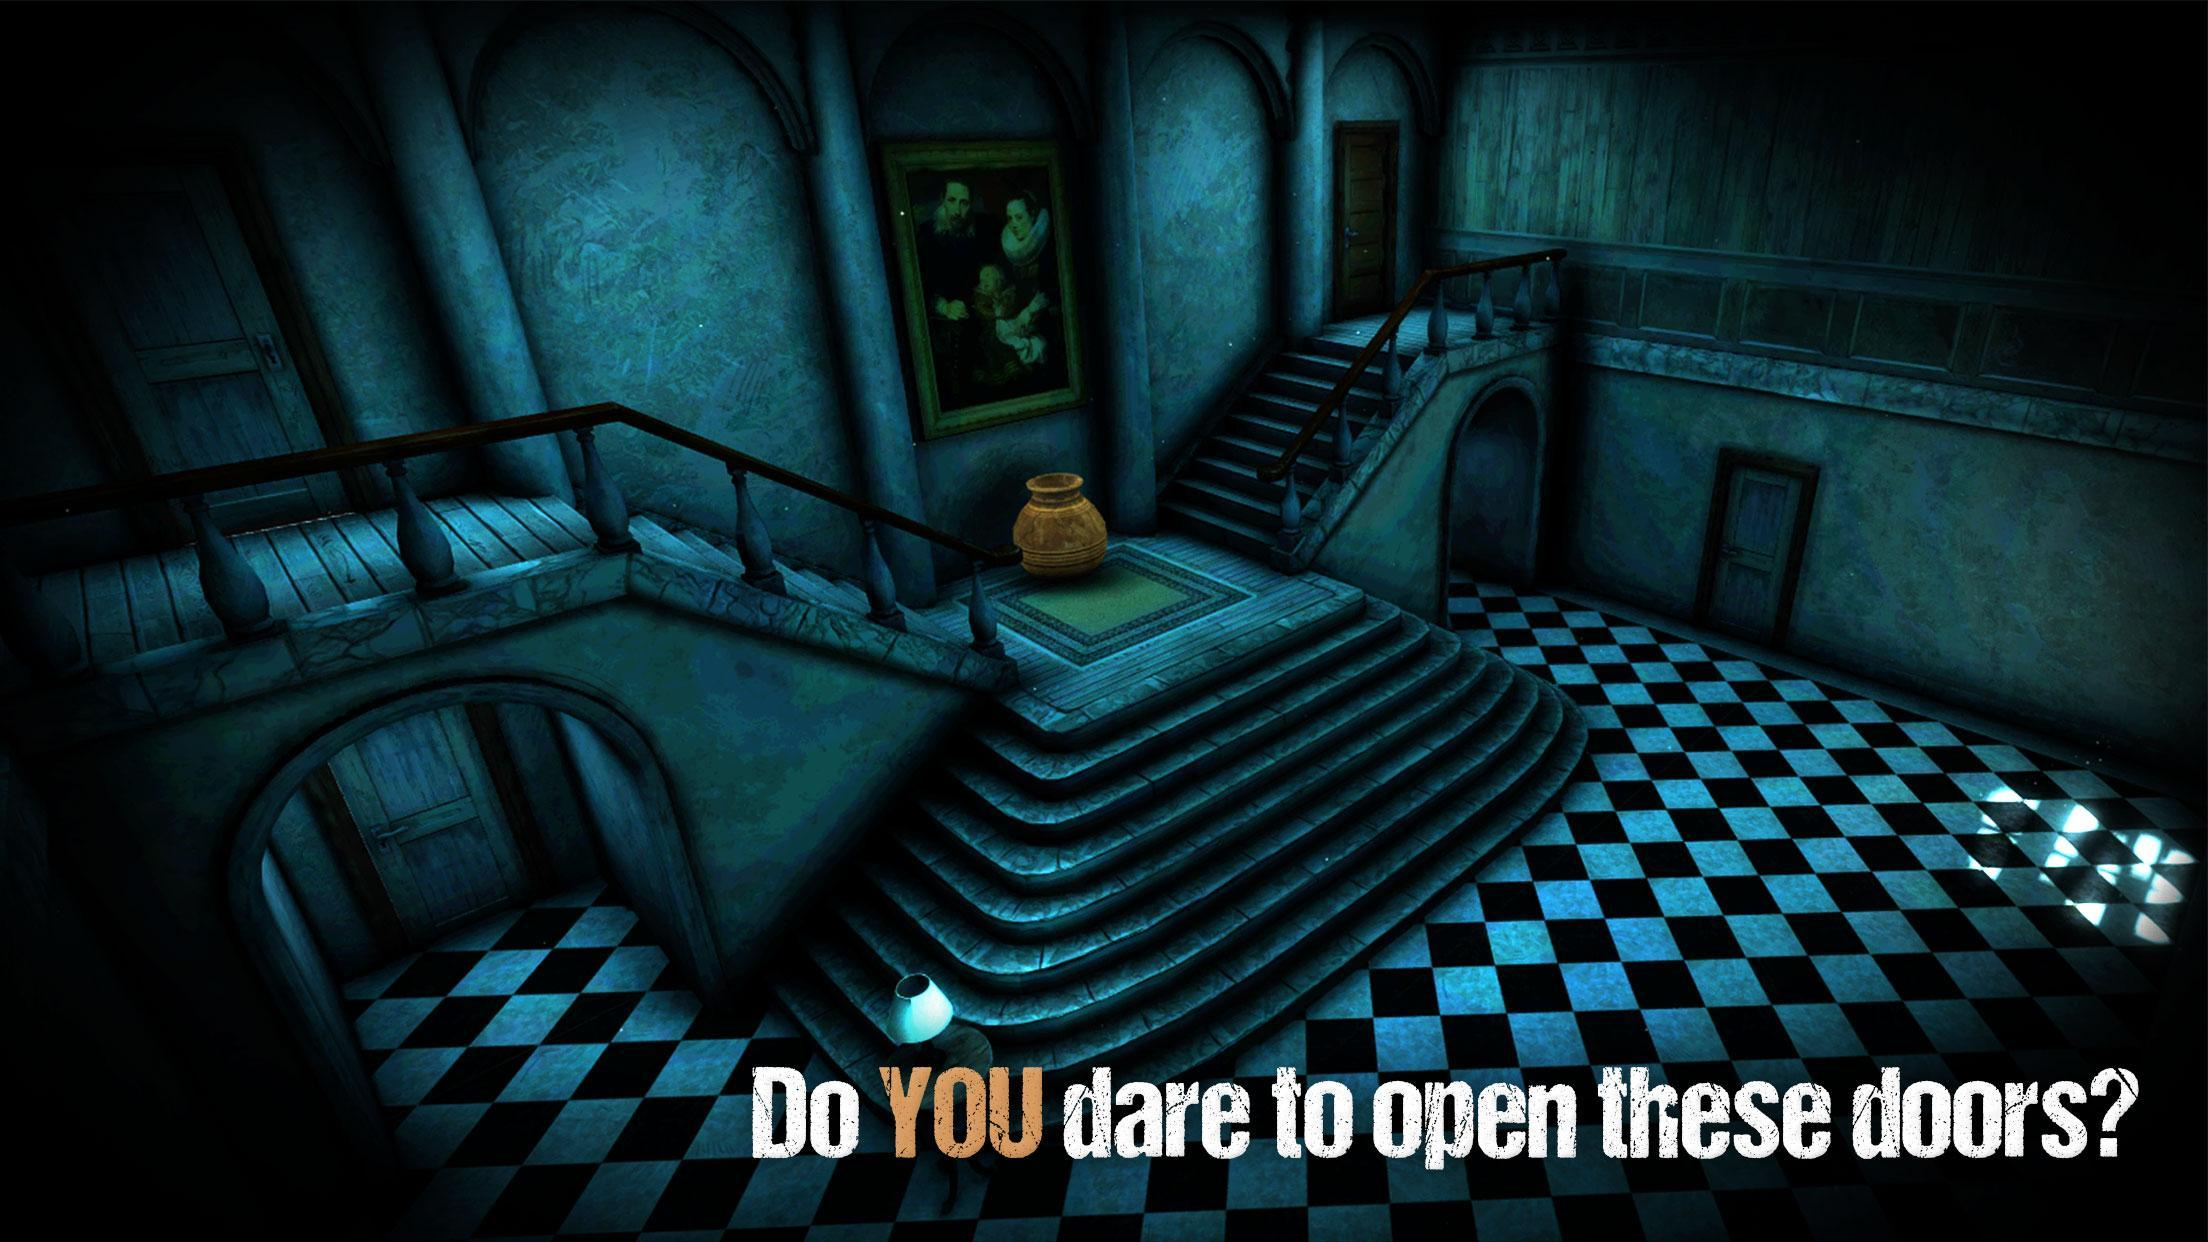 Sinister Edge Scary Horror Games 2.4.1 Screenshot 4